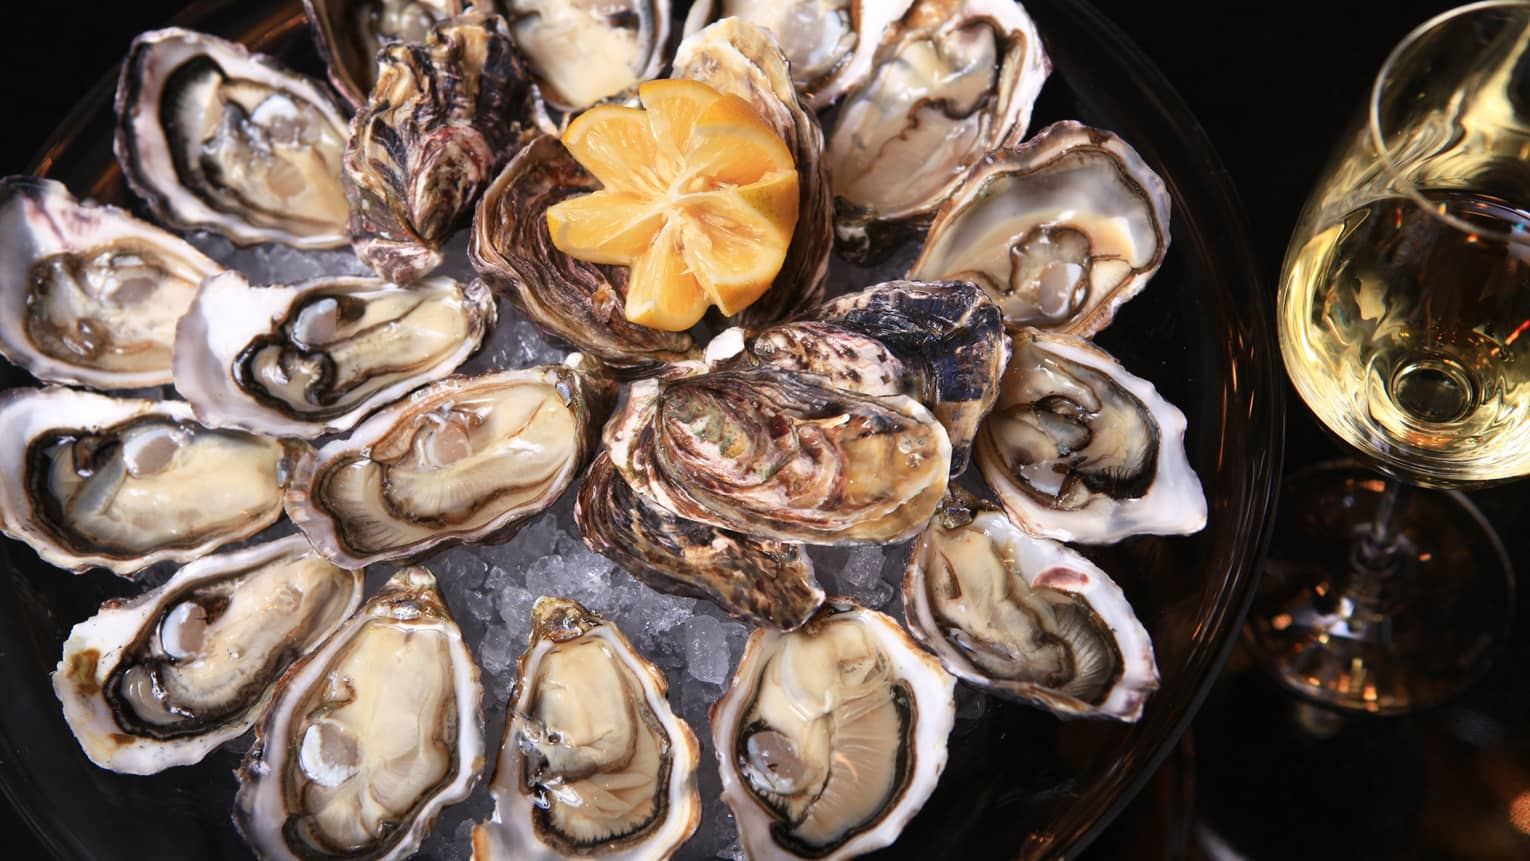 Fresh oysters in half shell arranged on platter